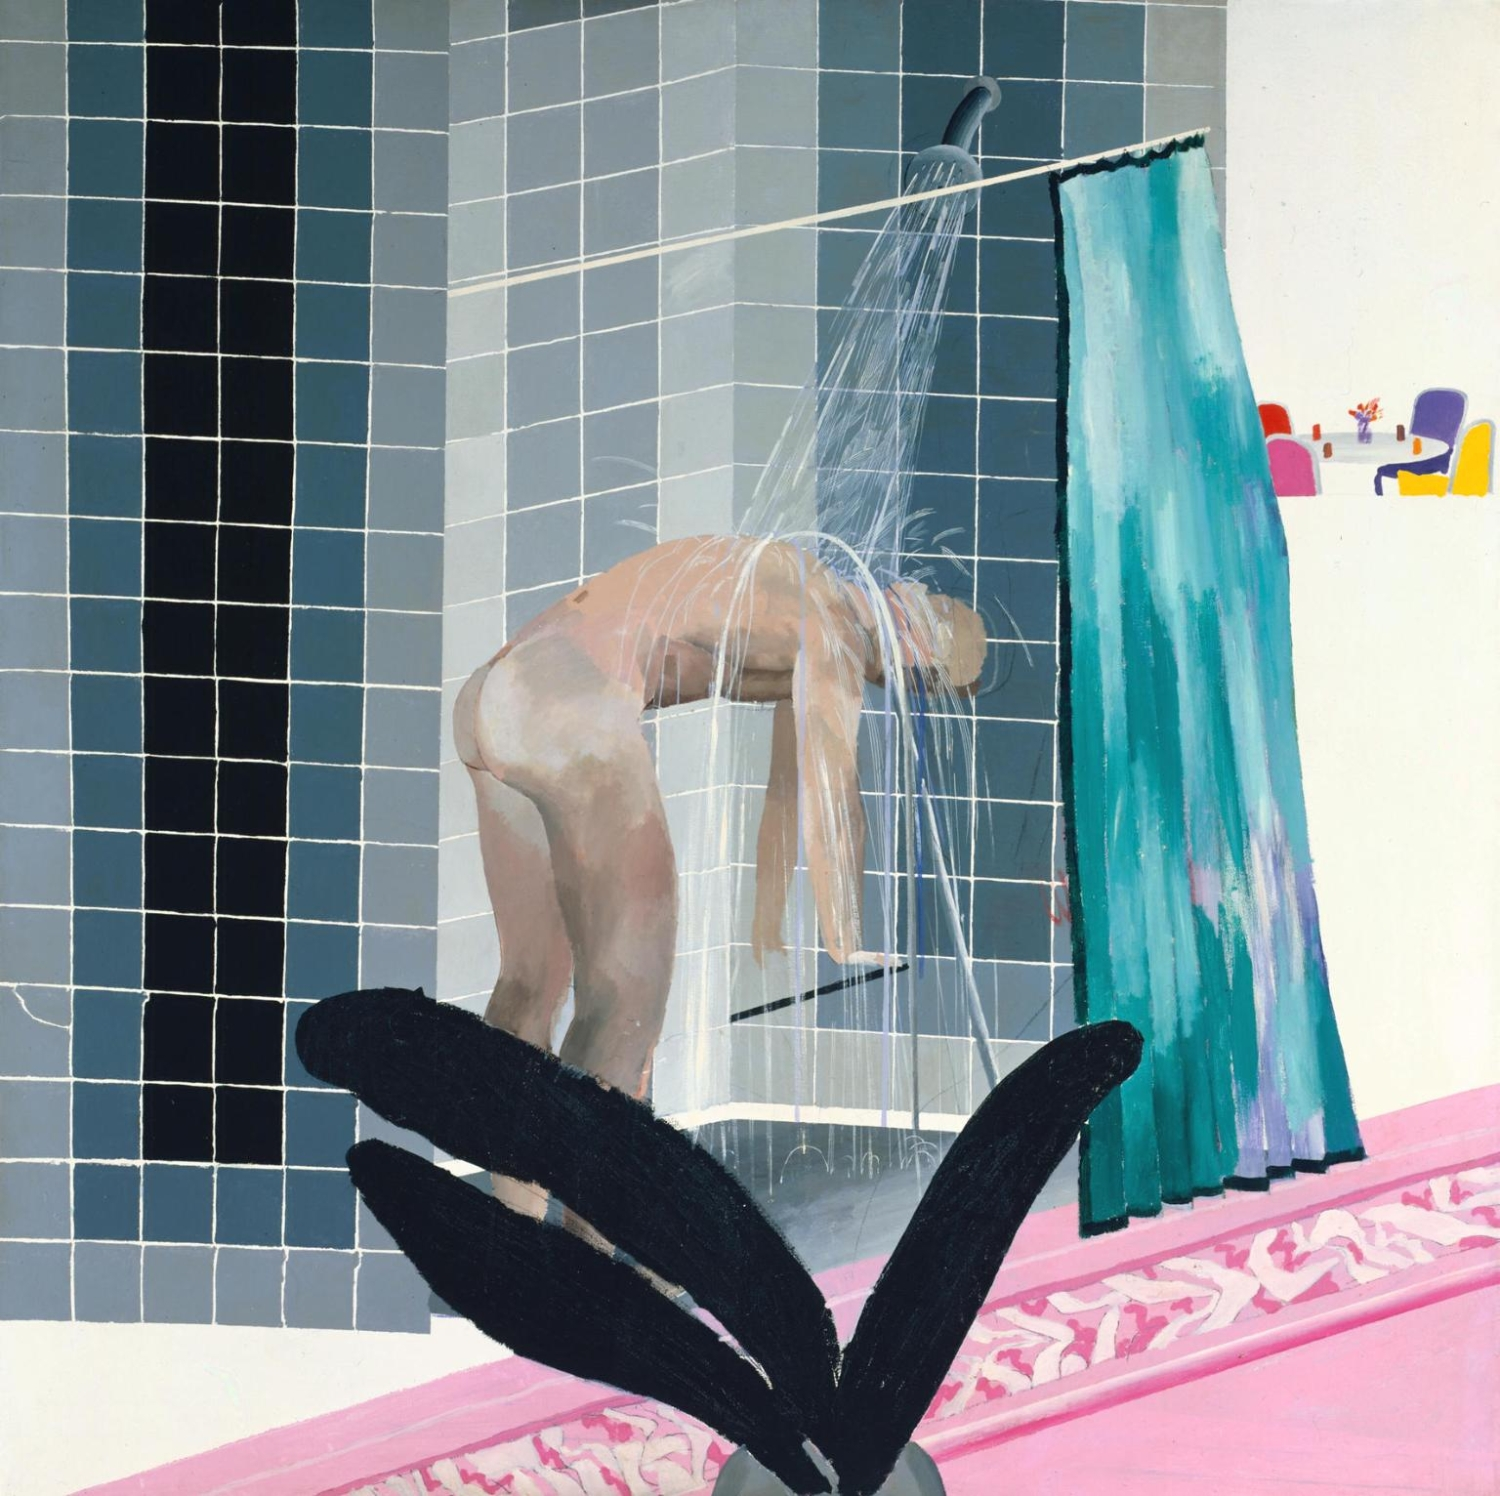 Man in Shower in Beverly Hills 1964 by David Hockney born 1937